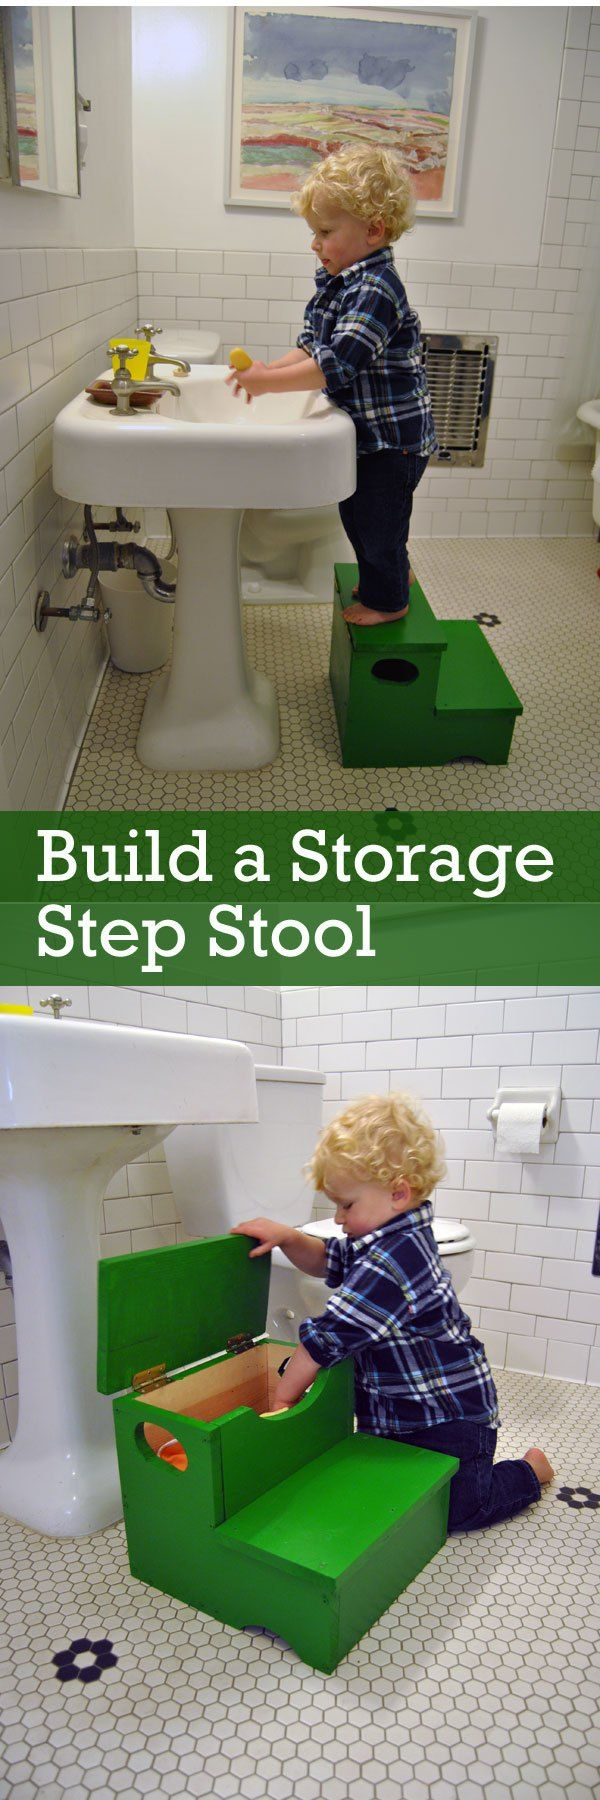 Bath toy storage that transforms to guest luxury bathroom on - 42 Bathroom Storage Hacks That Will Help You Get Ready So Much Faster